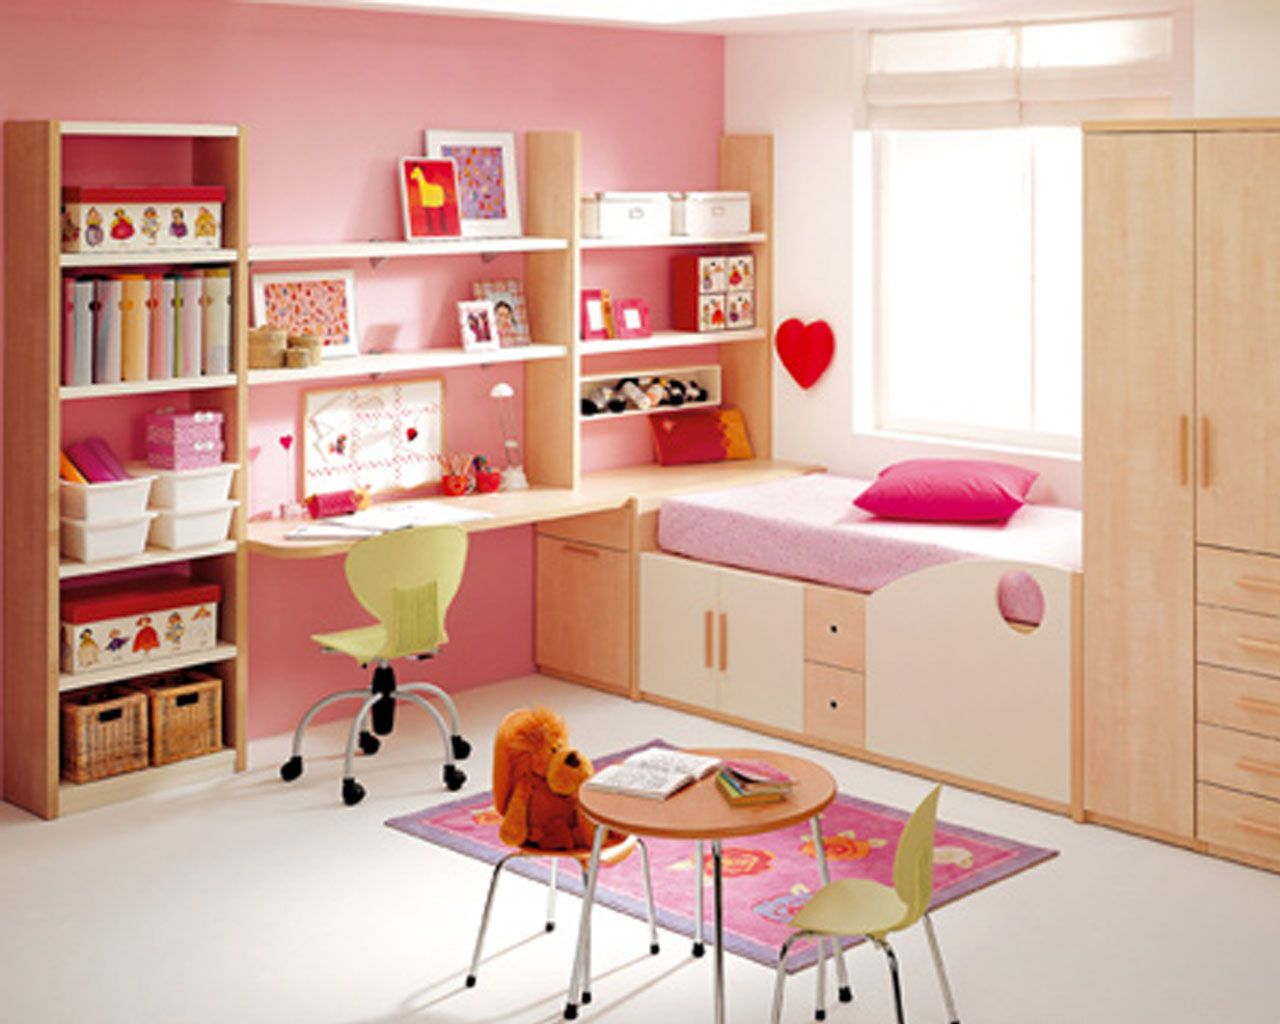 Girly Bedroom Ideas For Small Rooms Oldsoulstyle Bedroom Gallery